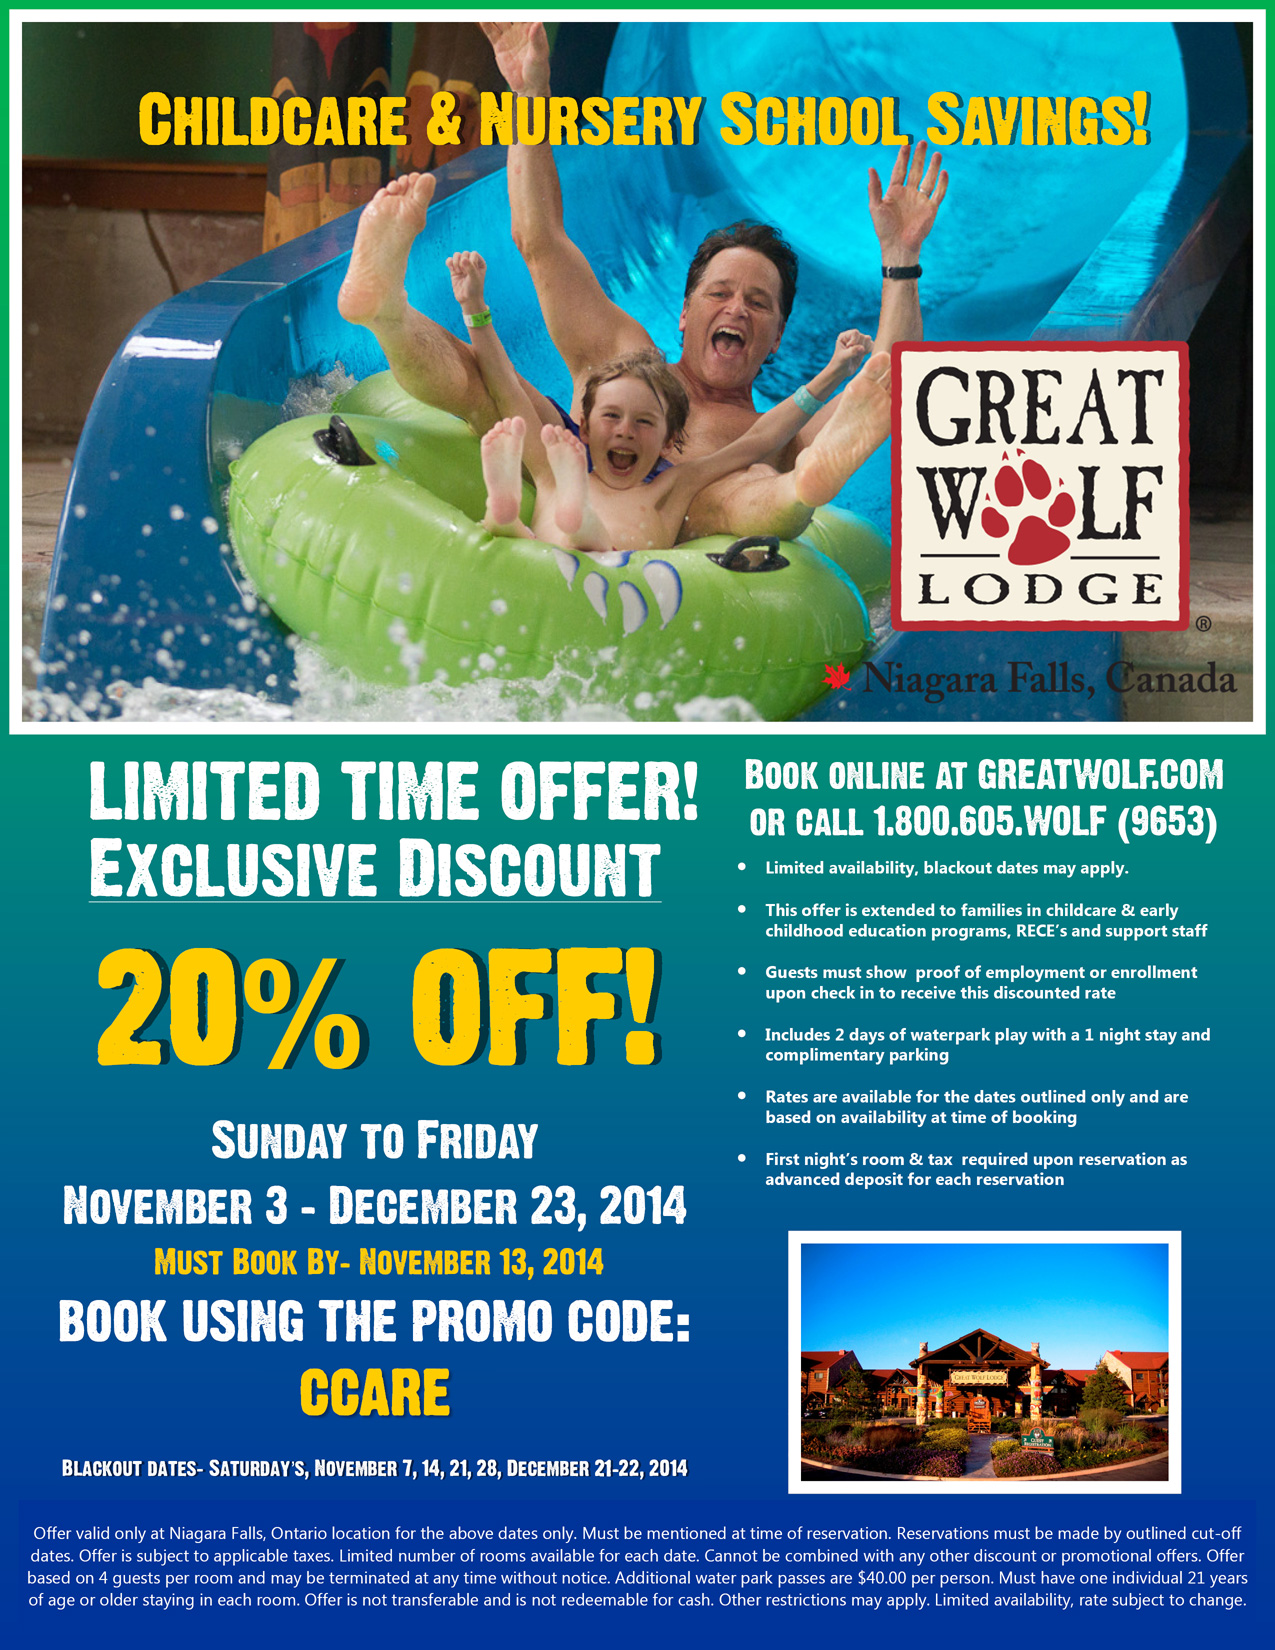 Great-Wolf-Lodge---Childcare-&-Nursery-School-Sale-(October,-2014)